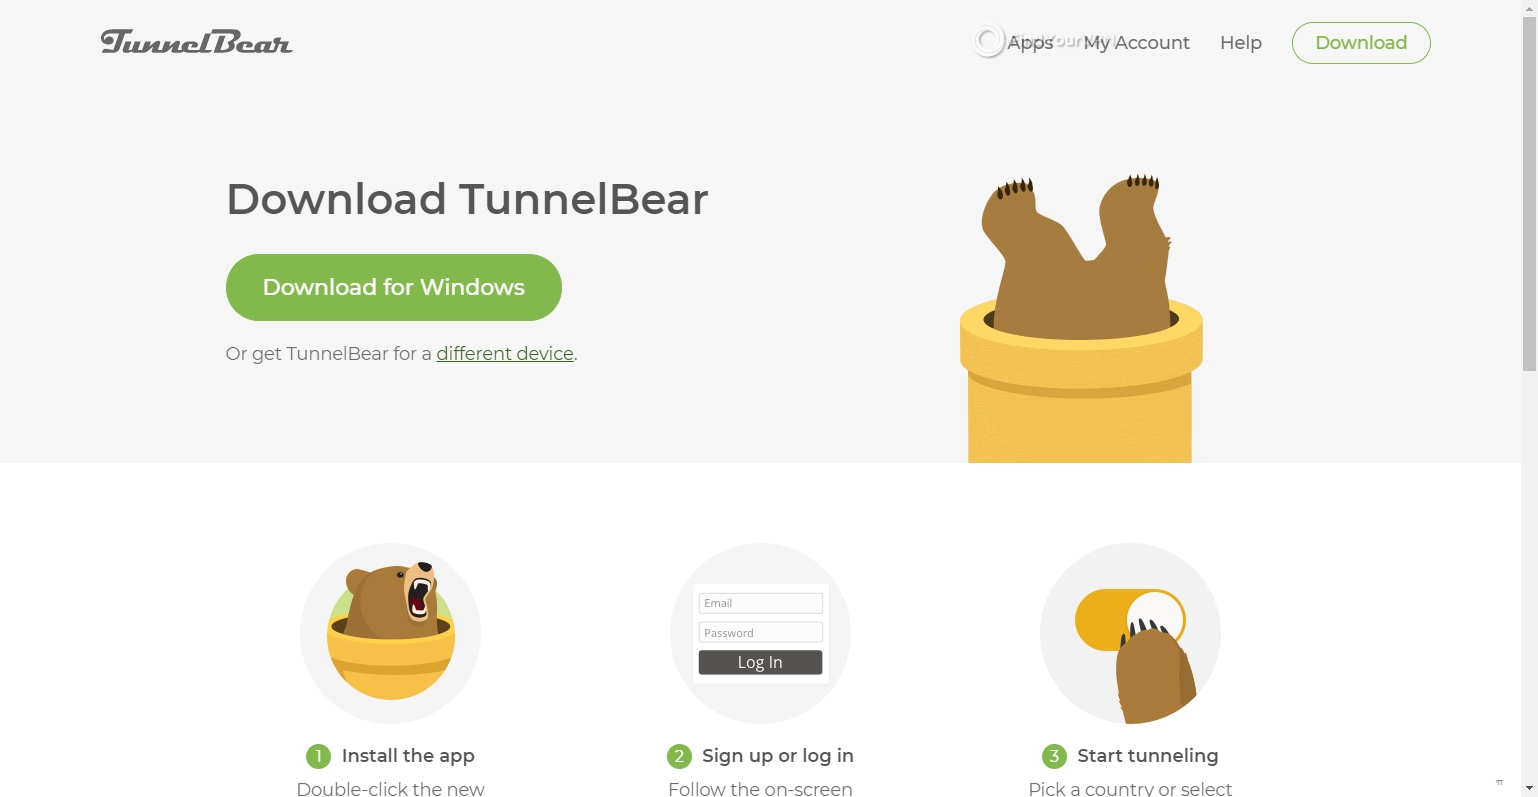 Downloading the Windows app for TunnelBear